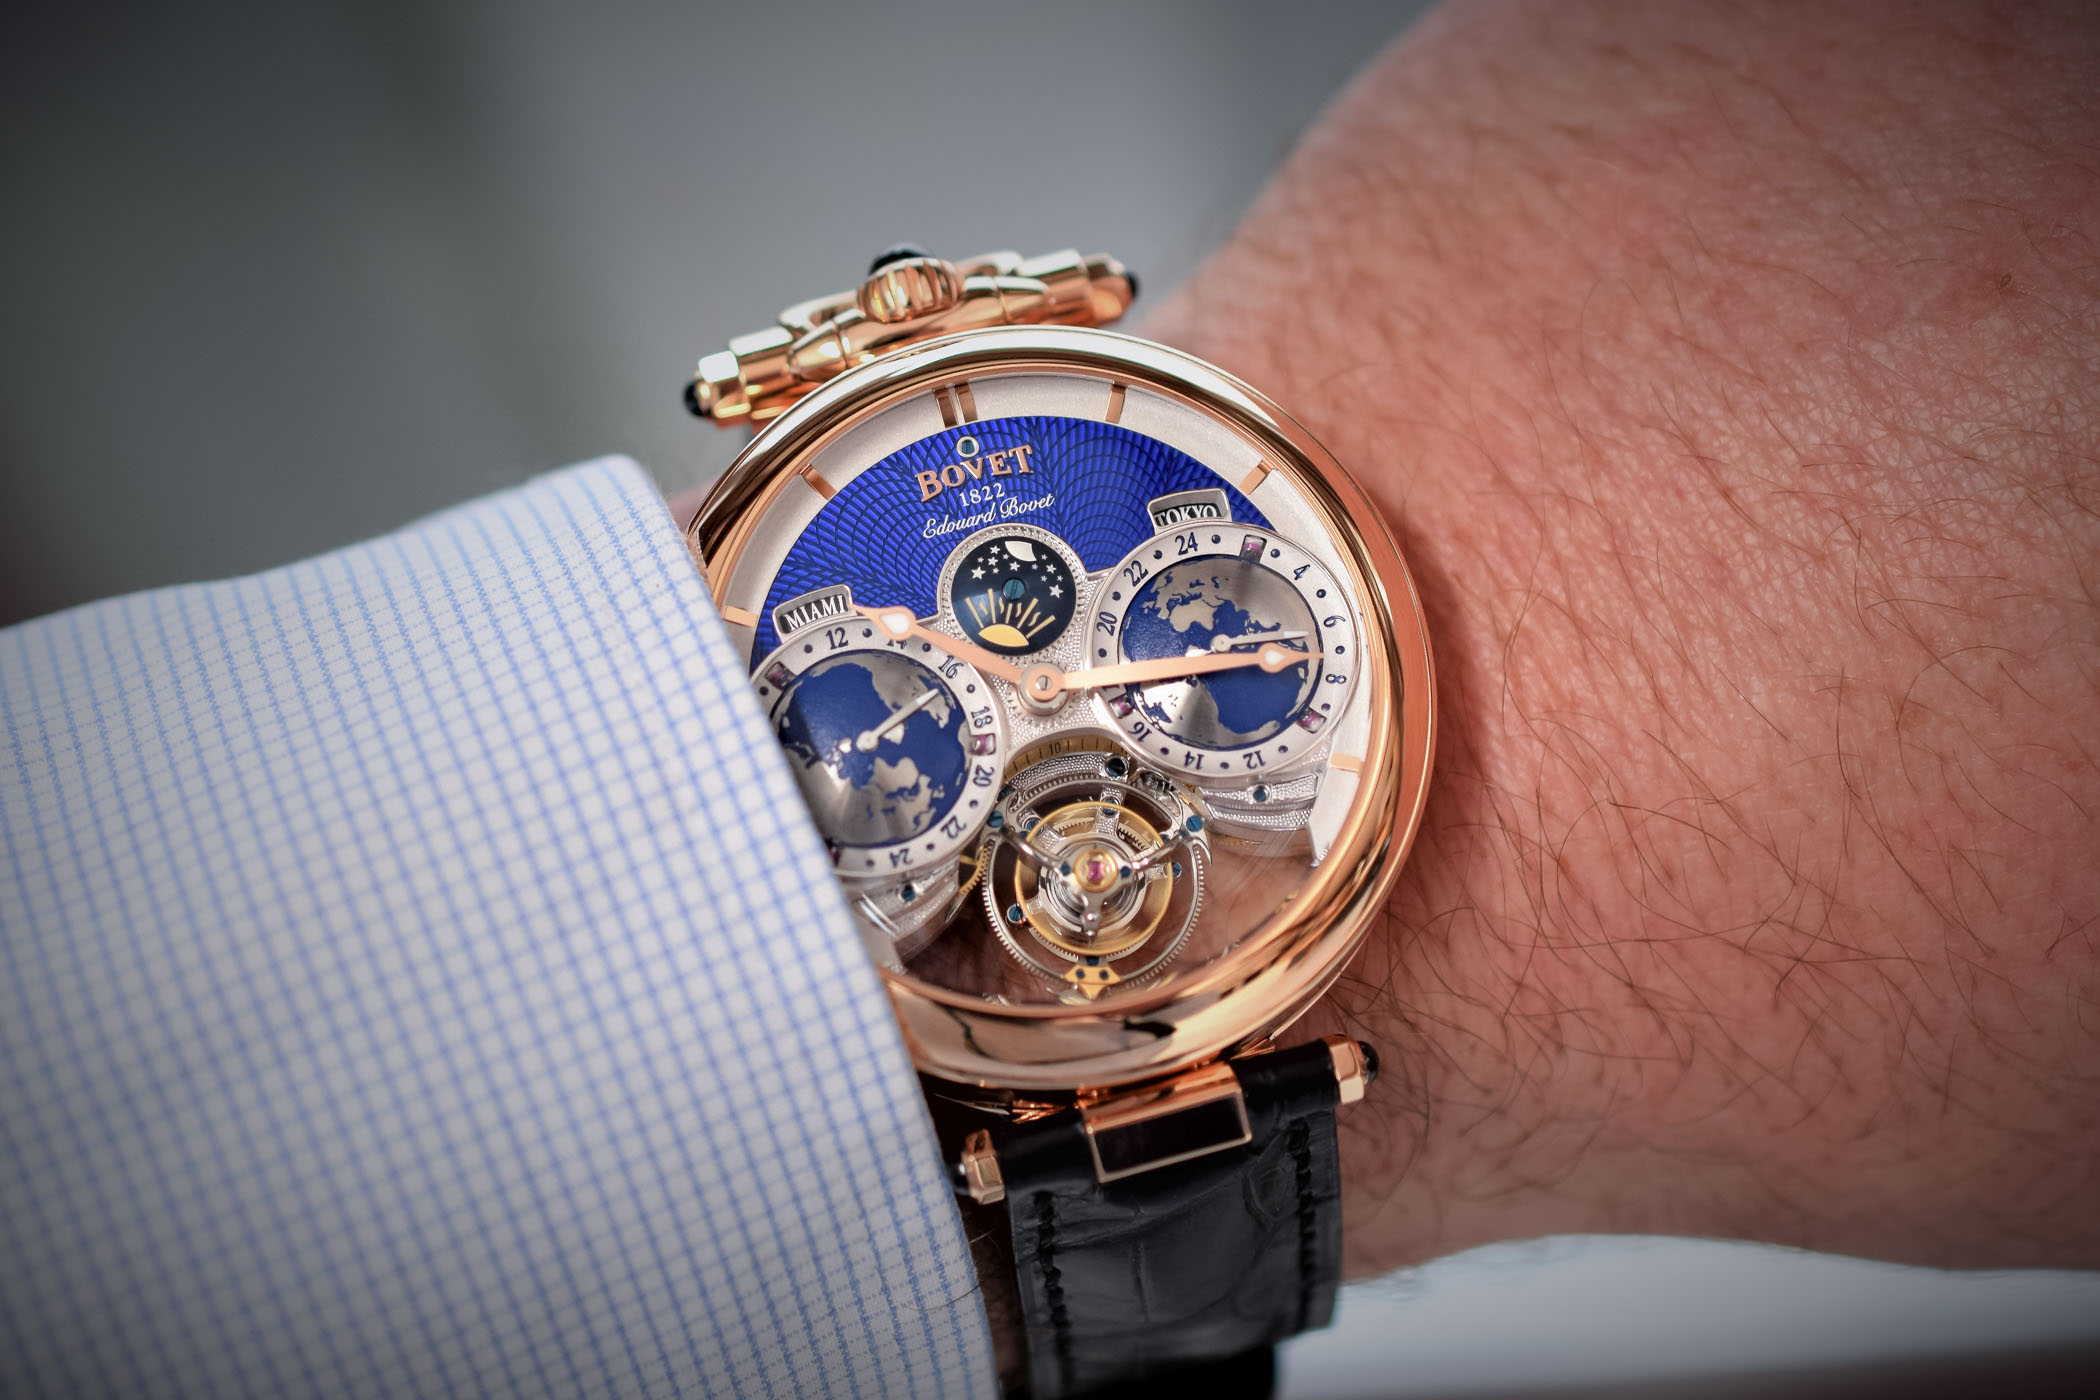 watchpro collection office officesrgb editions watches amb rose its adds to gold bovet ld